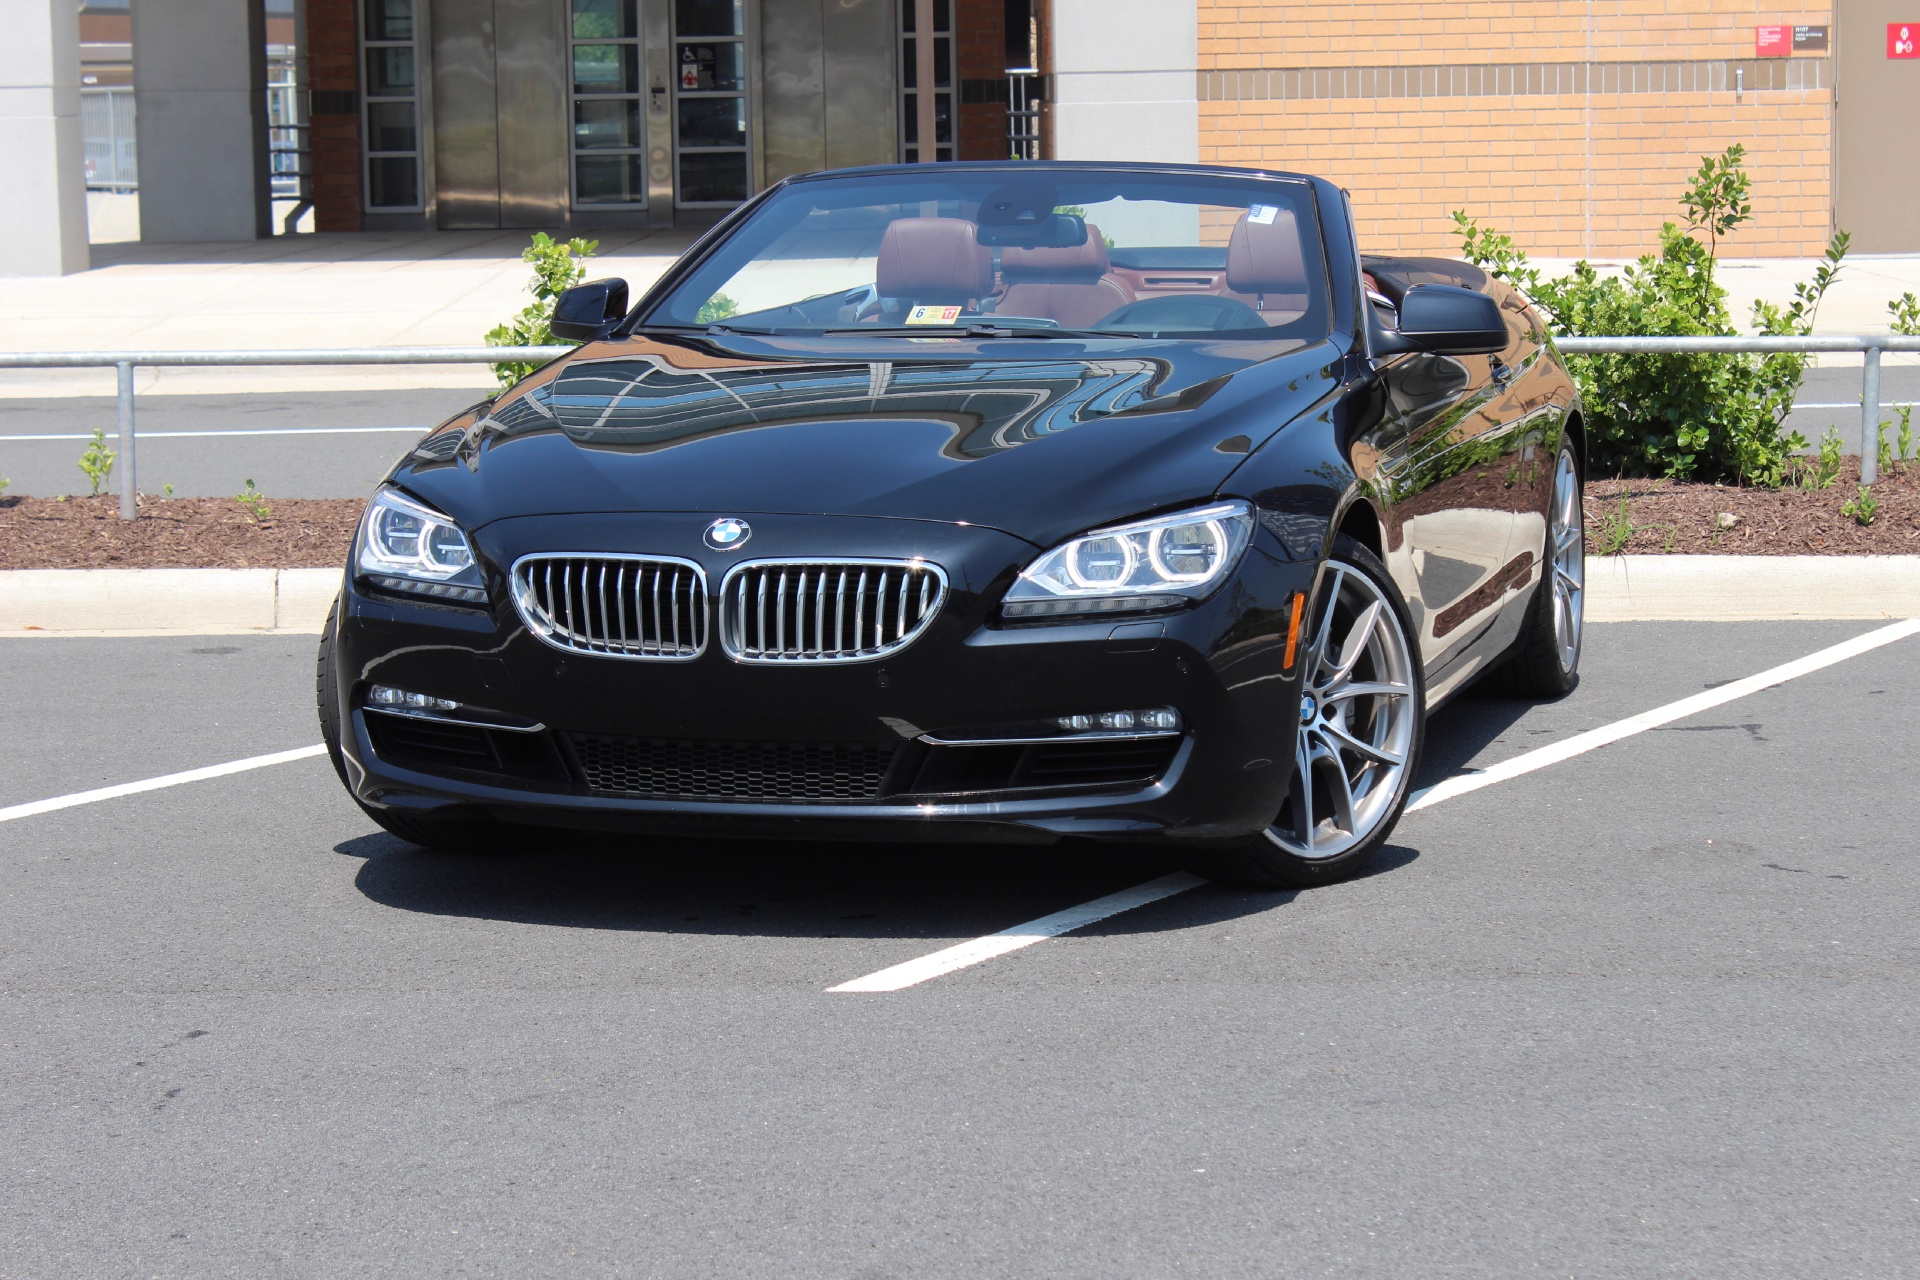 sale for overview series cargurus cars bmw pic